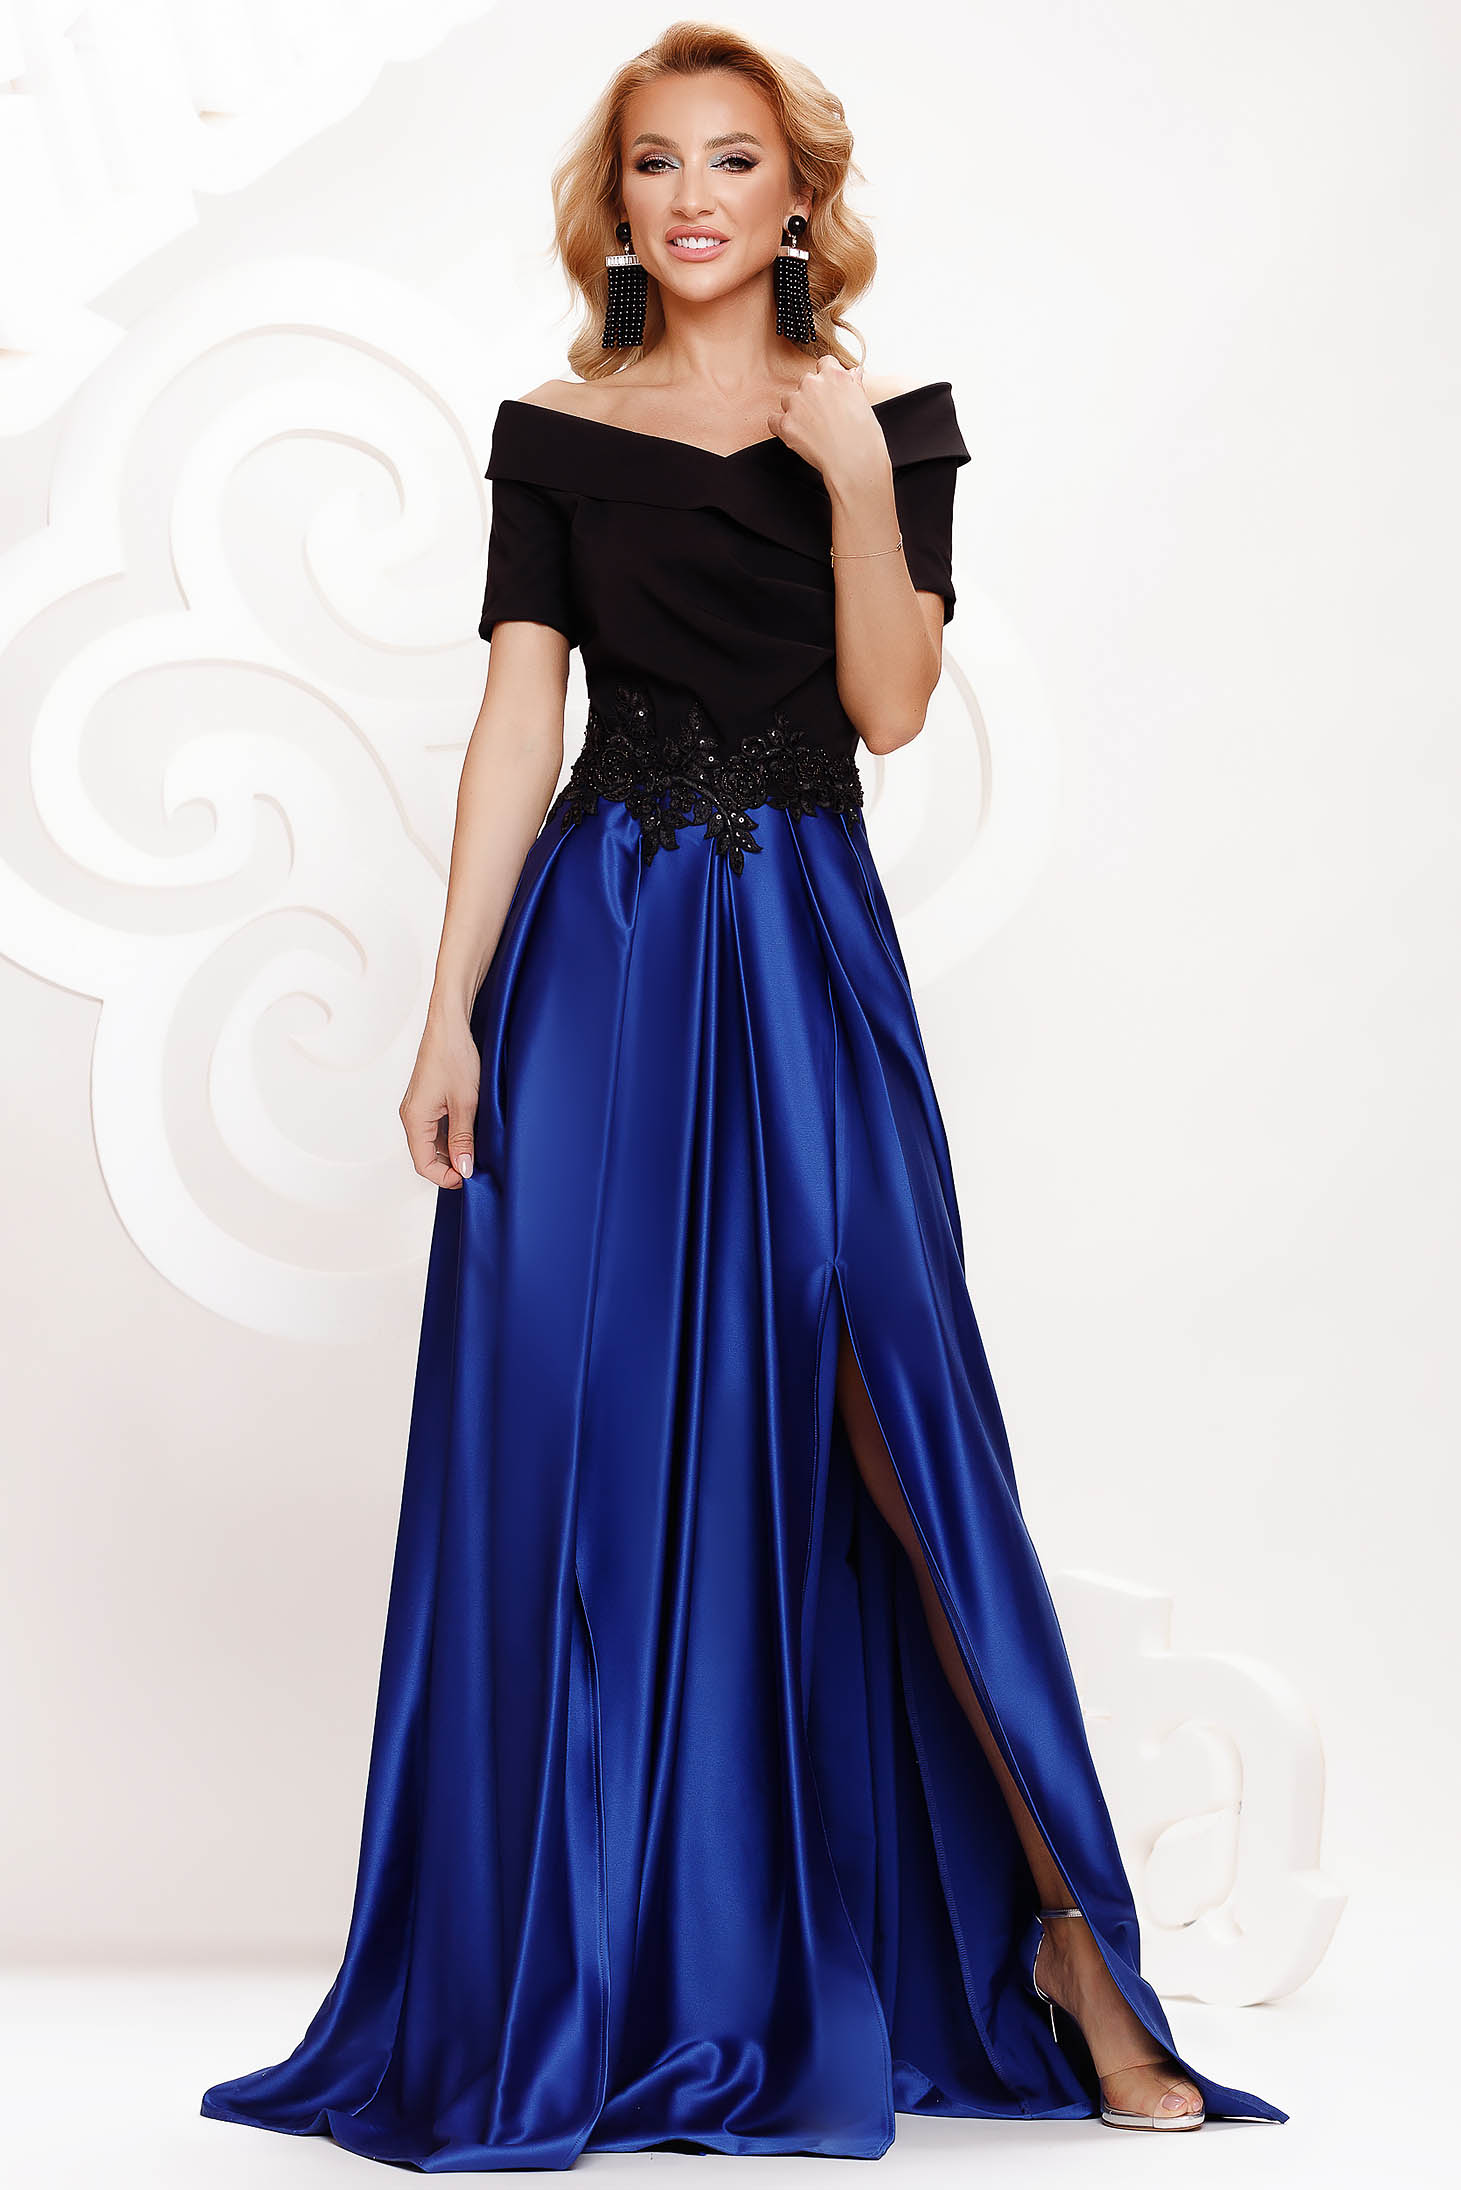 Blue dress from satin cloche occasional slit on the shoulders with embellished accessories